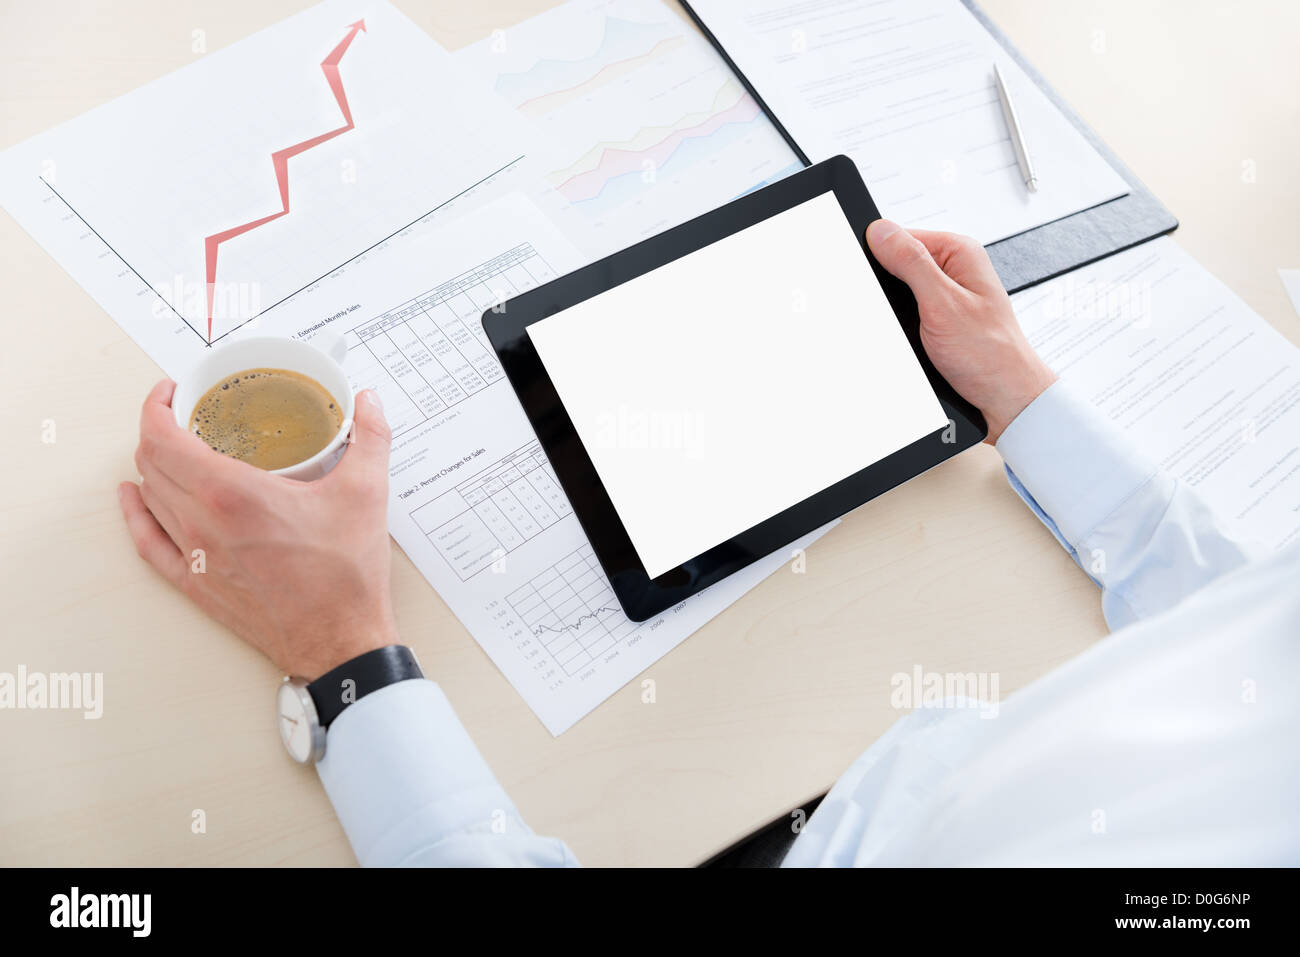 Businessman at workplace drinking coffee and looking at the blank digital computer. - Stock Image